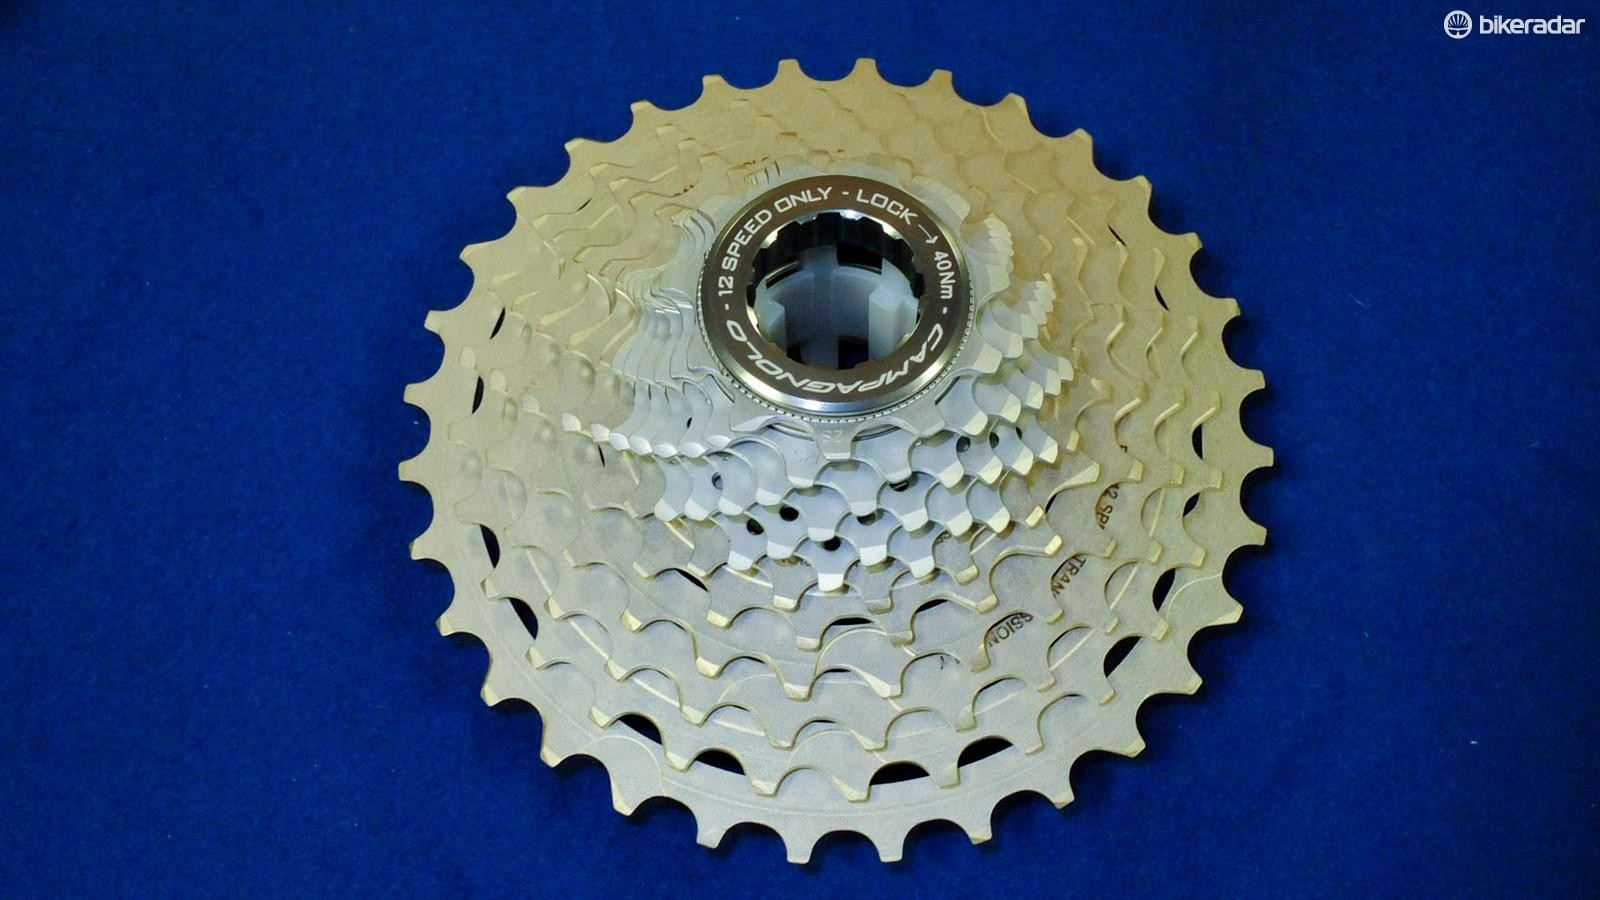 There are just two cassettes to choose from that are shared across both groupsets